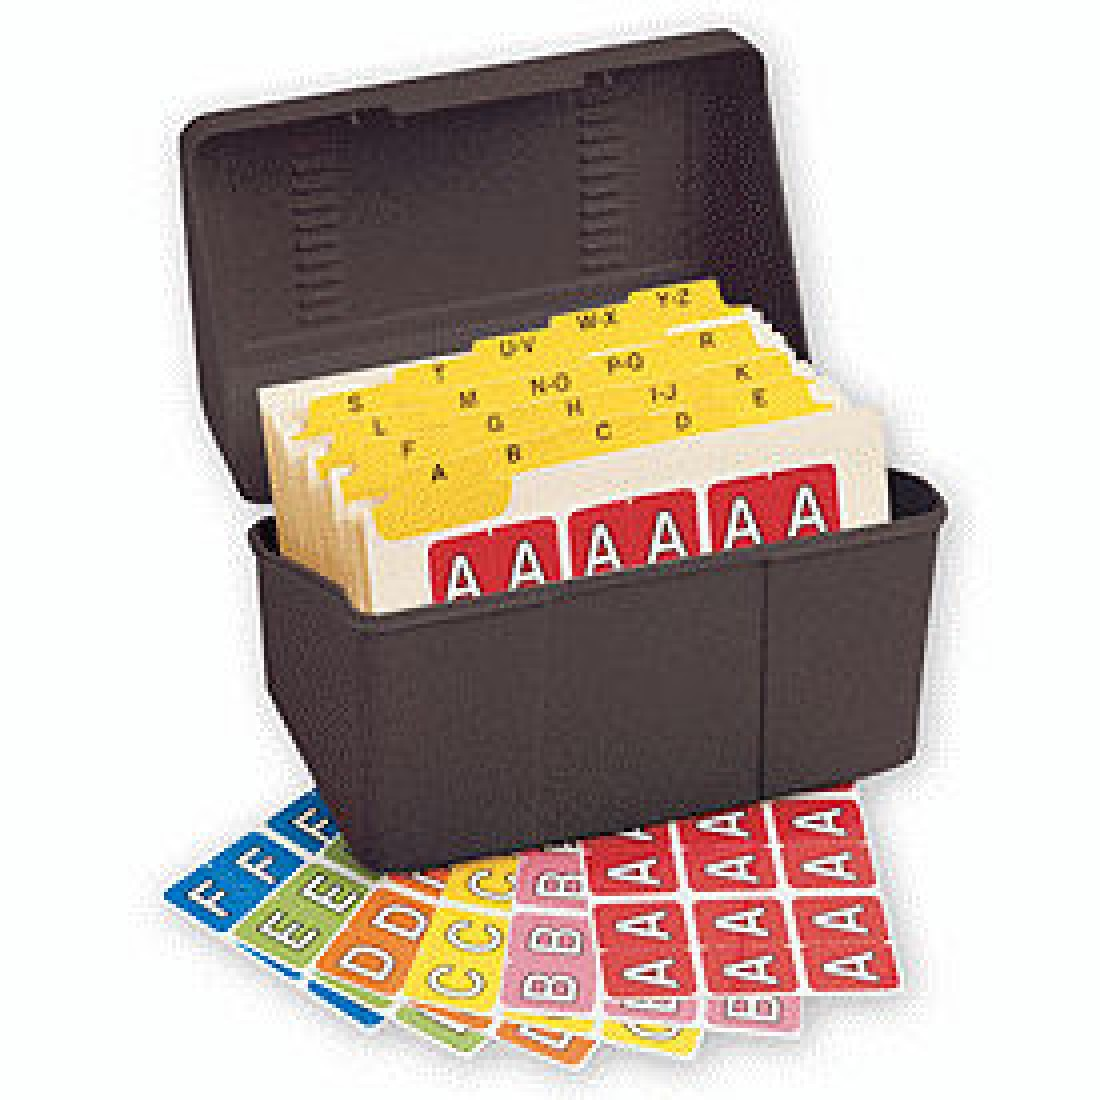 Sycom & Barkley Alpha Label Sheets Starter Set (Item #1650) - Business Checks Supplies  - Business Checks